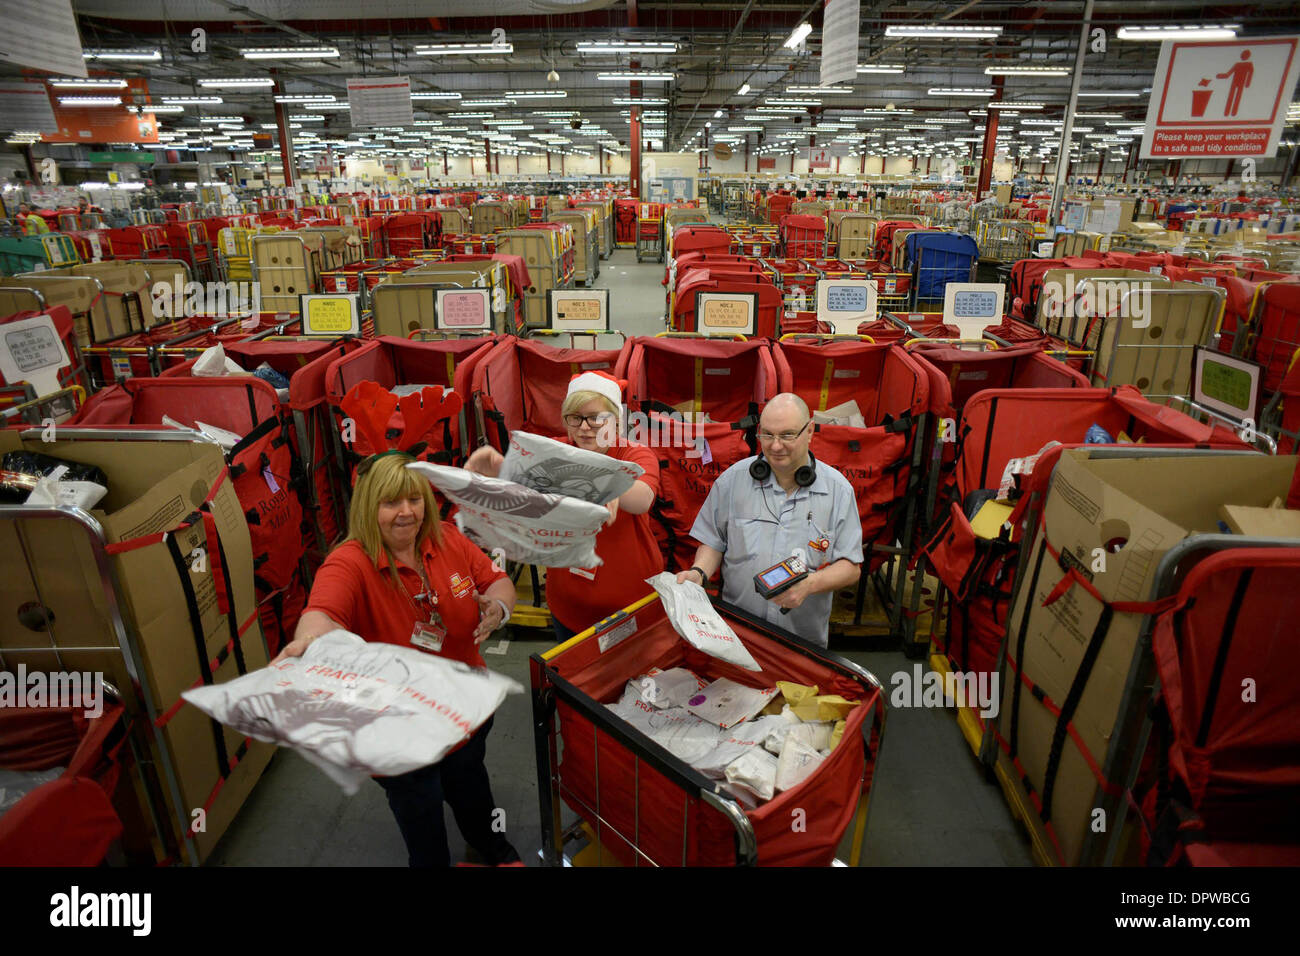 Mail Centre Stock Photos Amp Mail Centre Stock Images Alamy